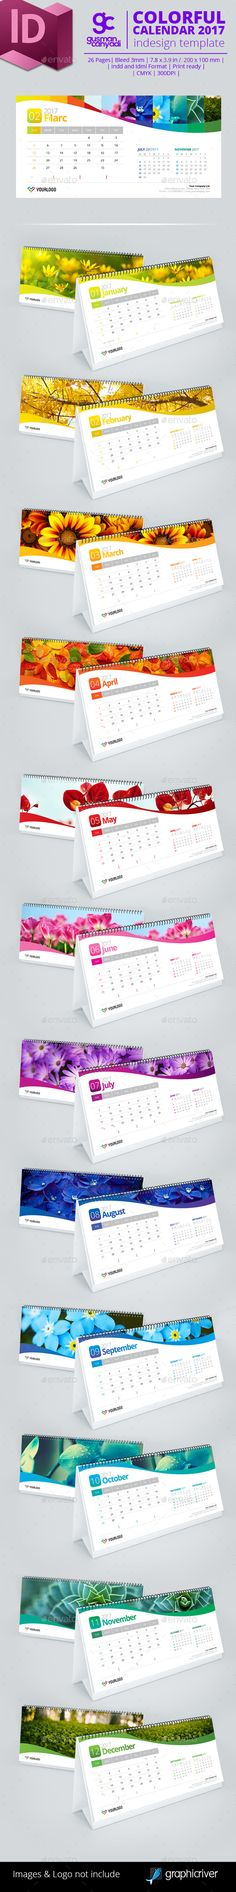 Wall Calendar   Design Wall Calendars And Calendar